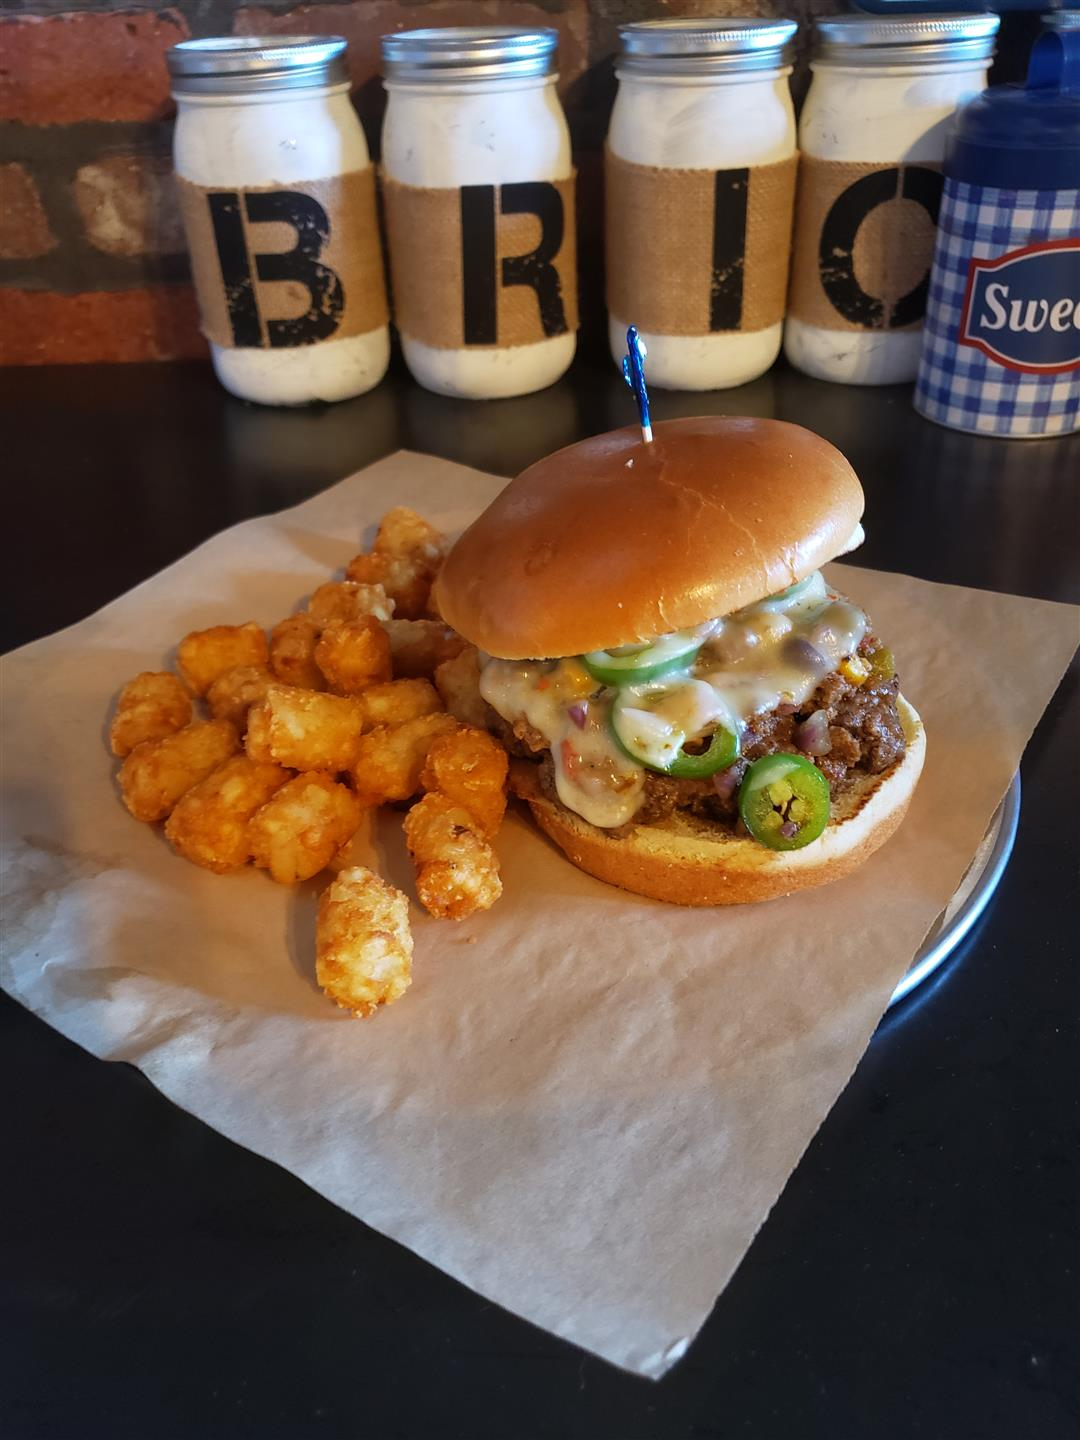 burger with melted cheese and jalapenos with a side of tator tots on a placemat eith the Brickies cans behind them